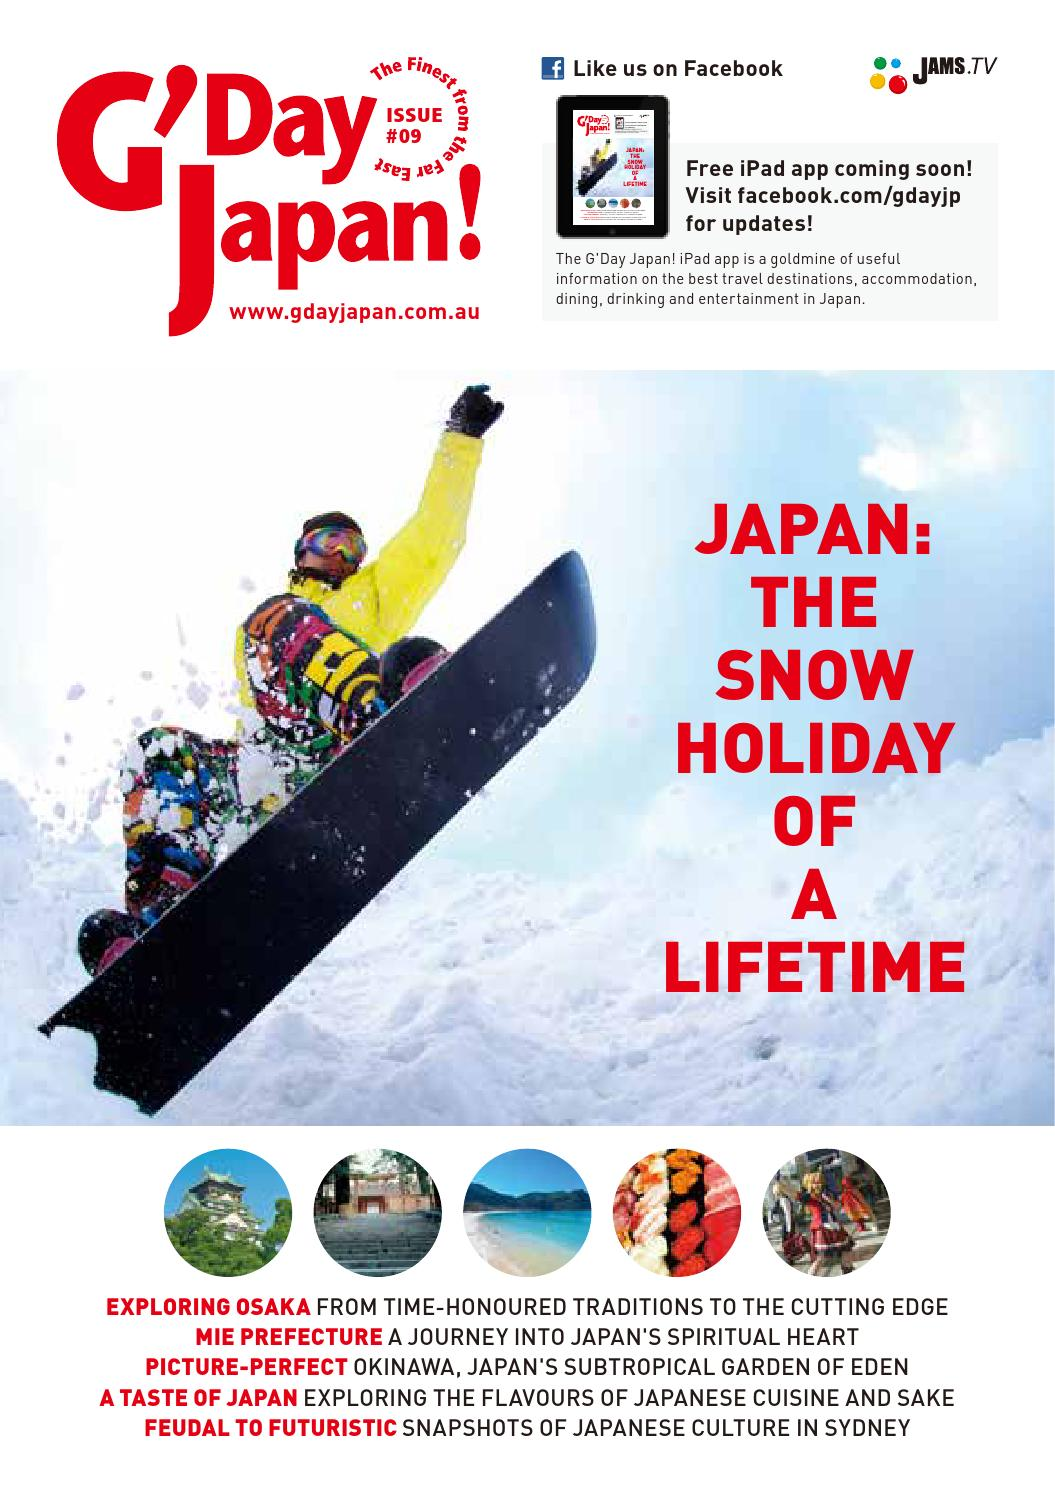 G\'Day Japan! ISSUE #09 by JAMS TV - issuu